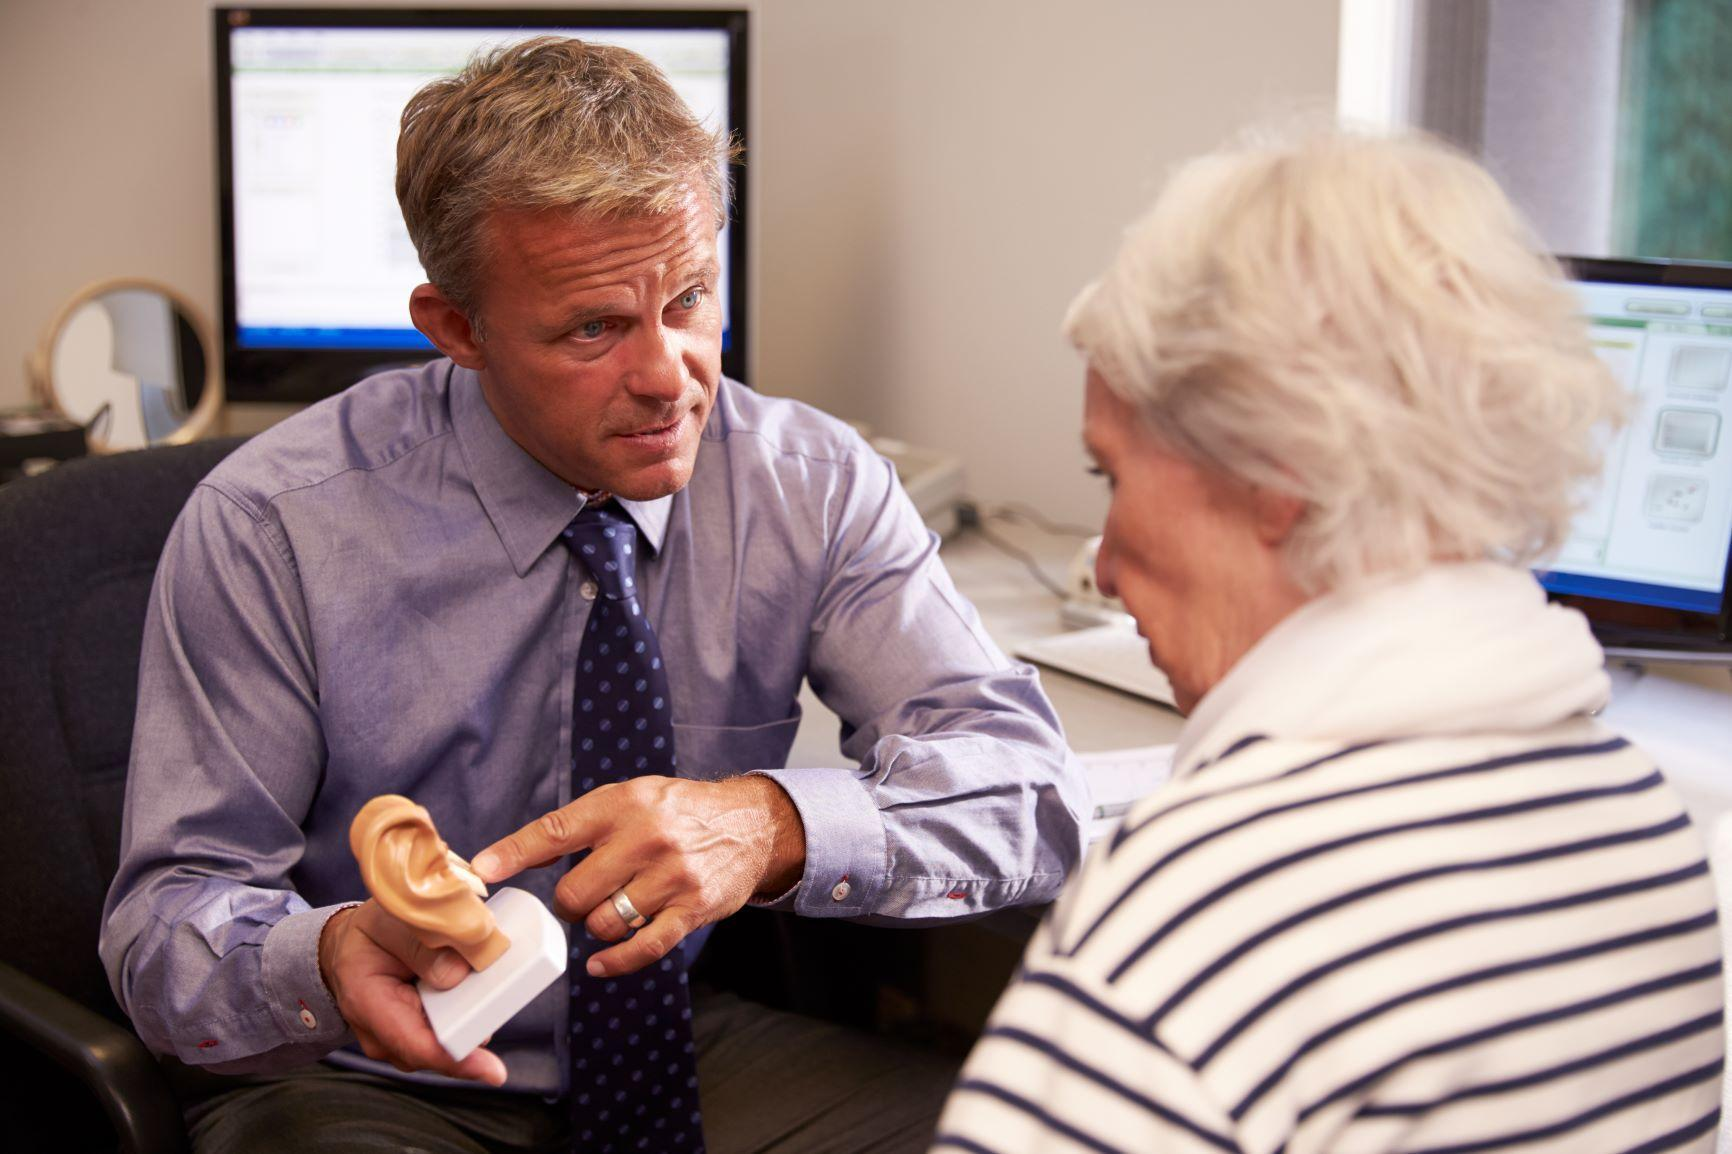 Doctor talking to patient about hearing health